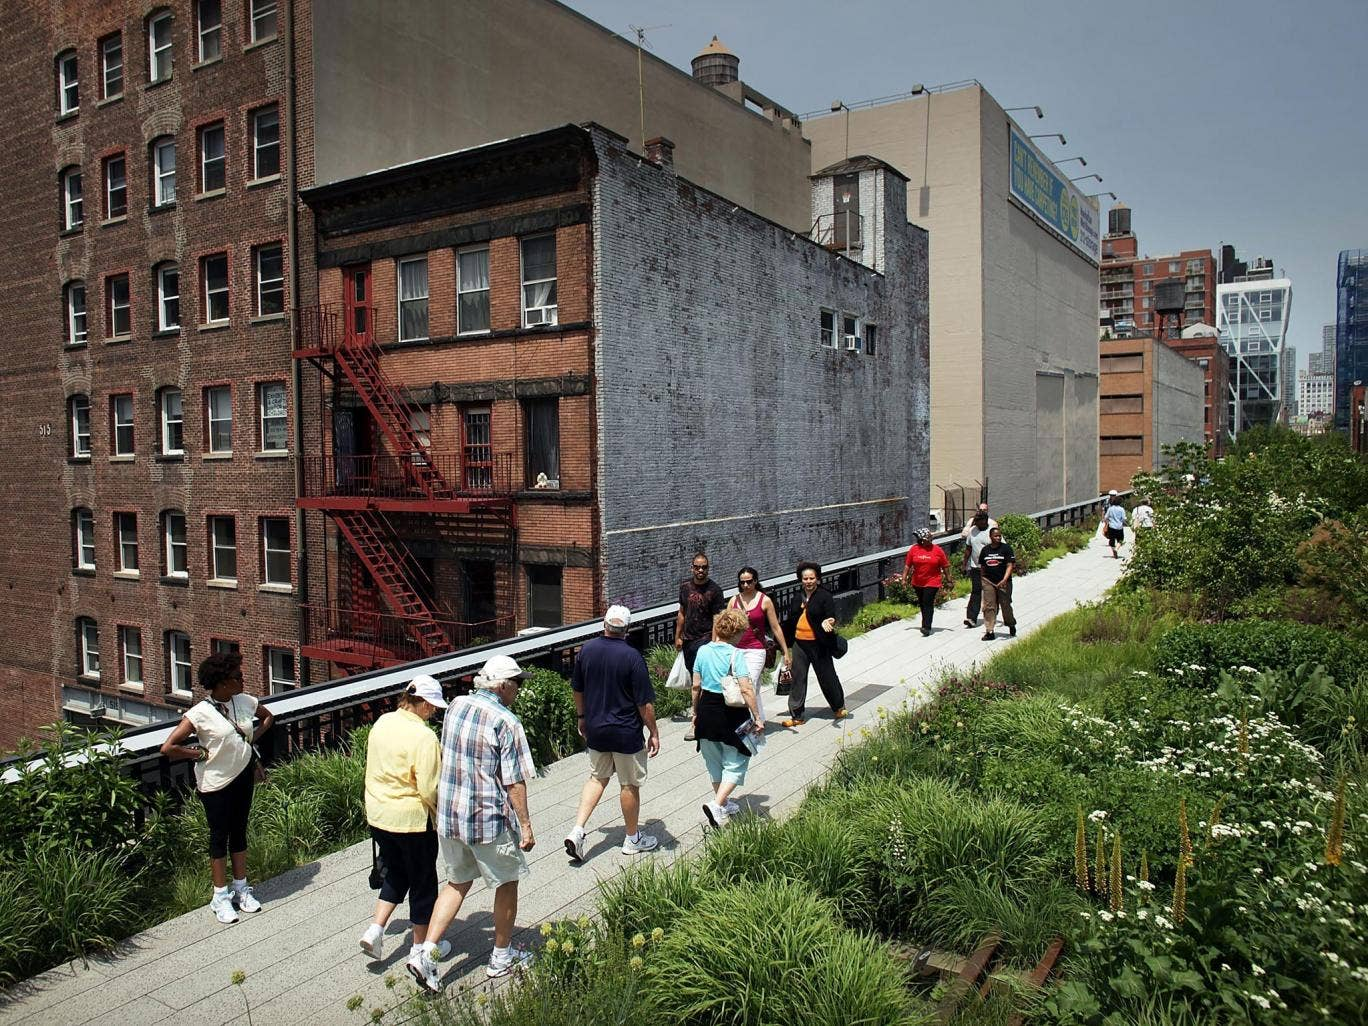 The project has been compared to New York's High Line